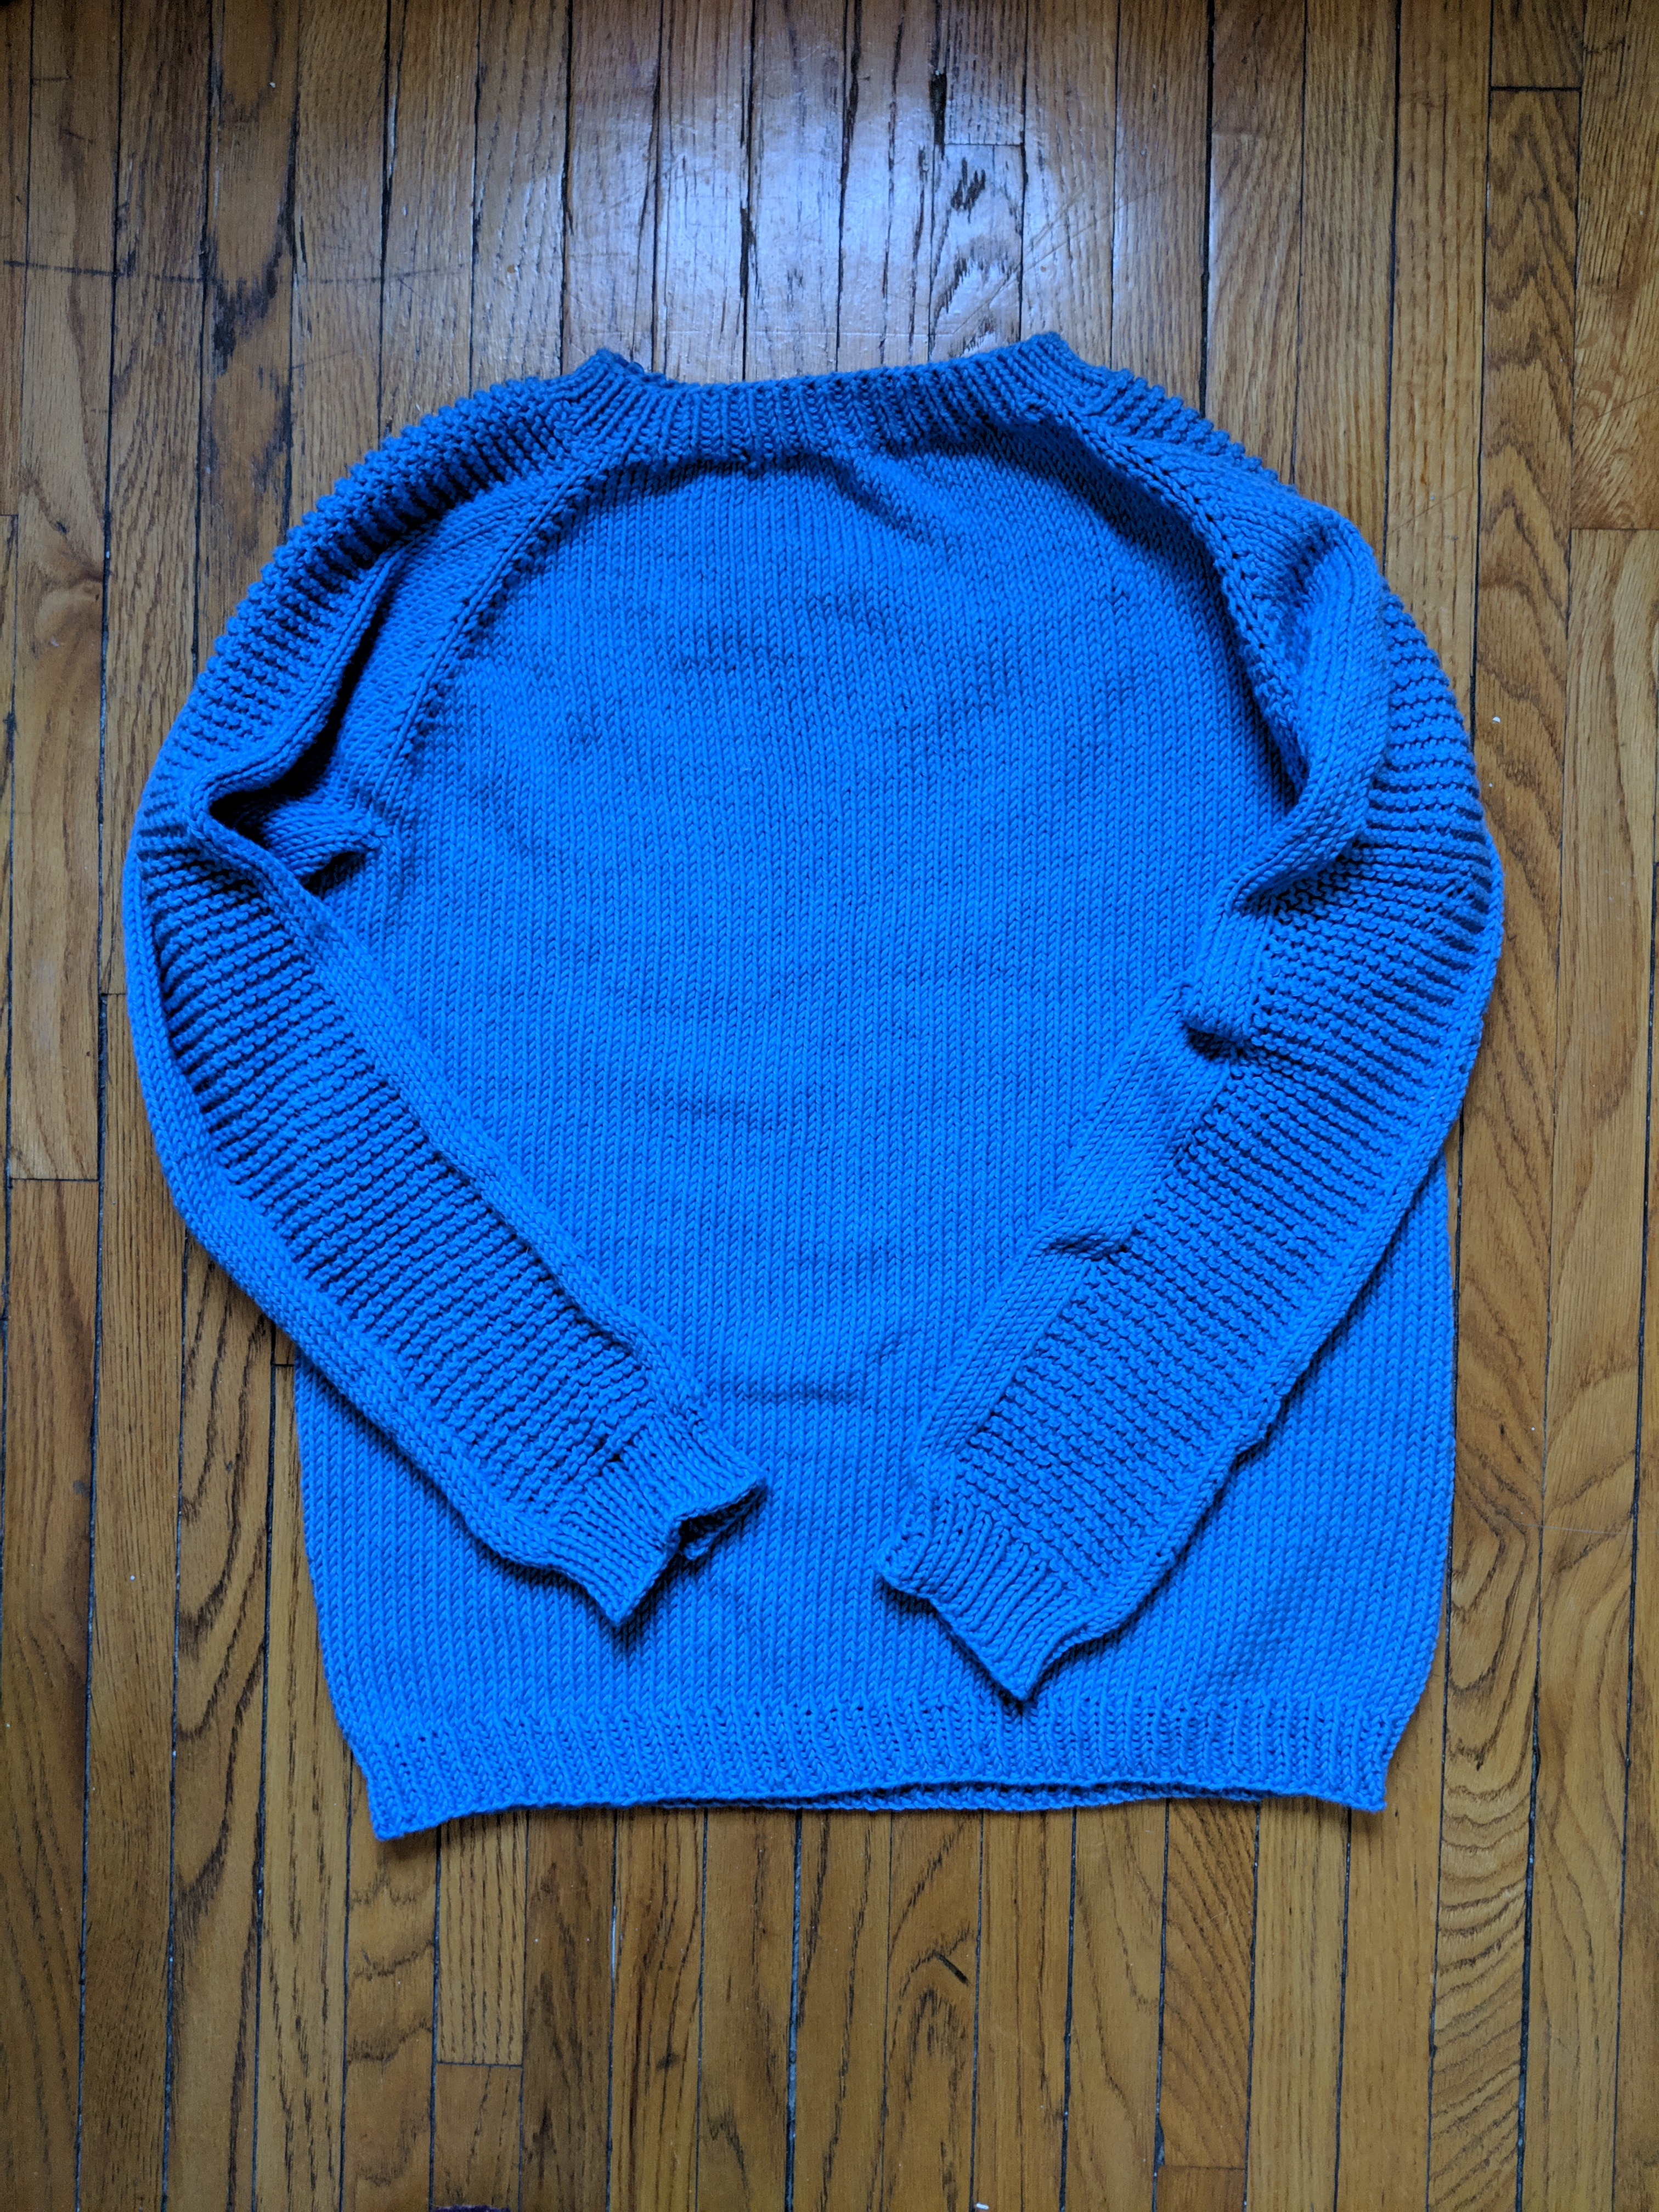 A blue knit Flax sweater lies spread out on a hardwood floor